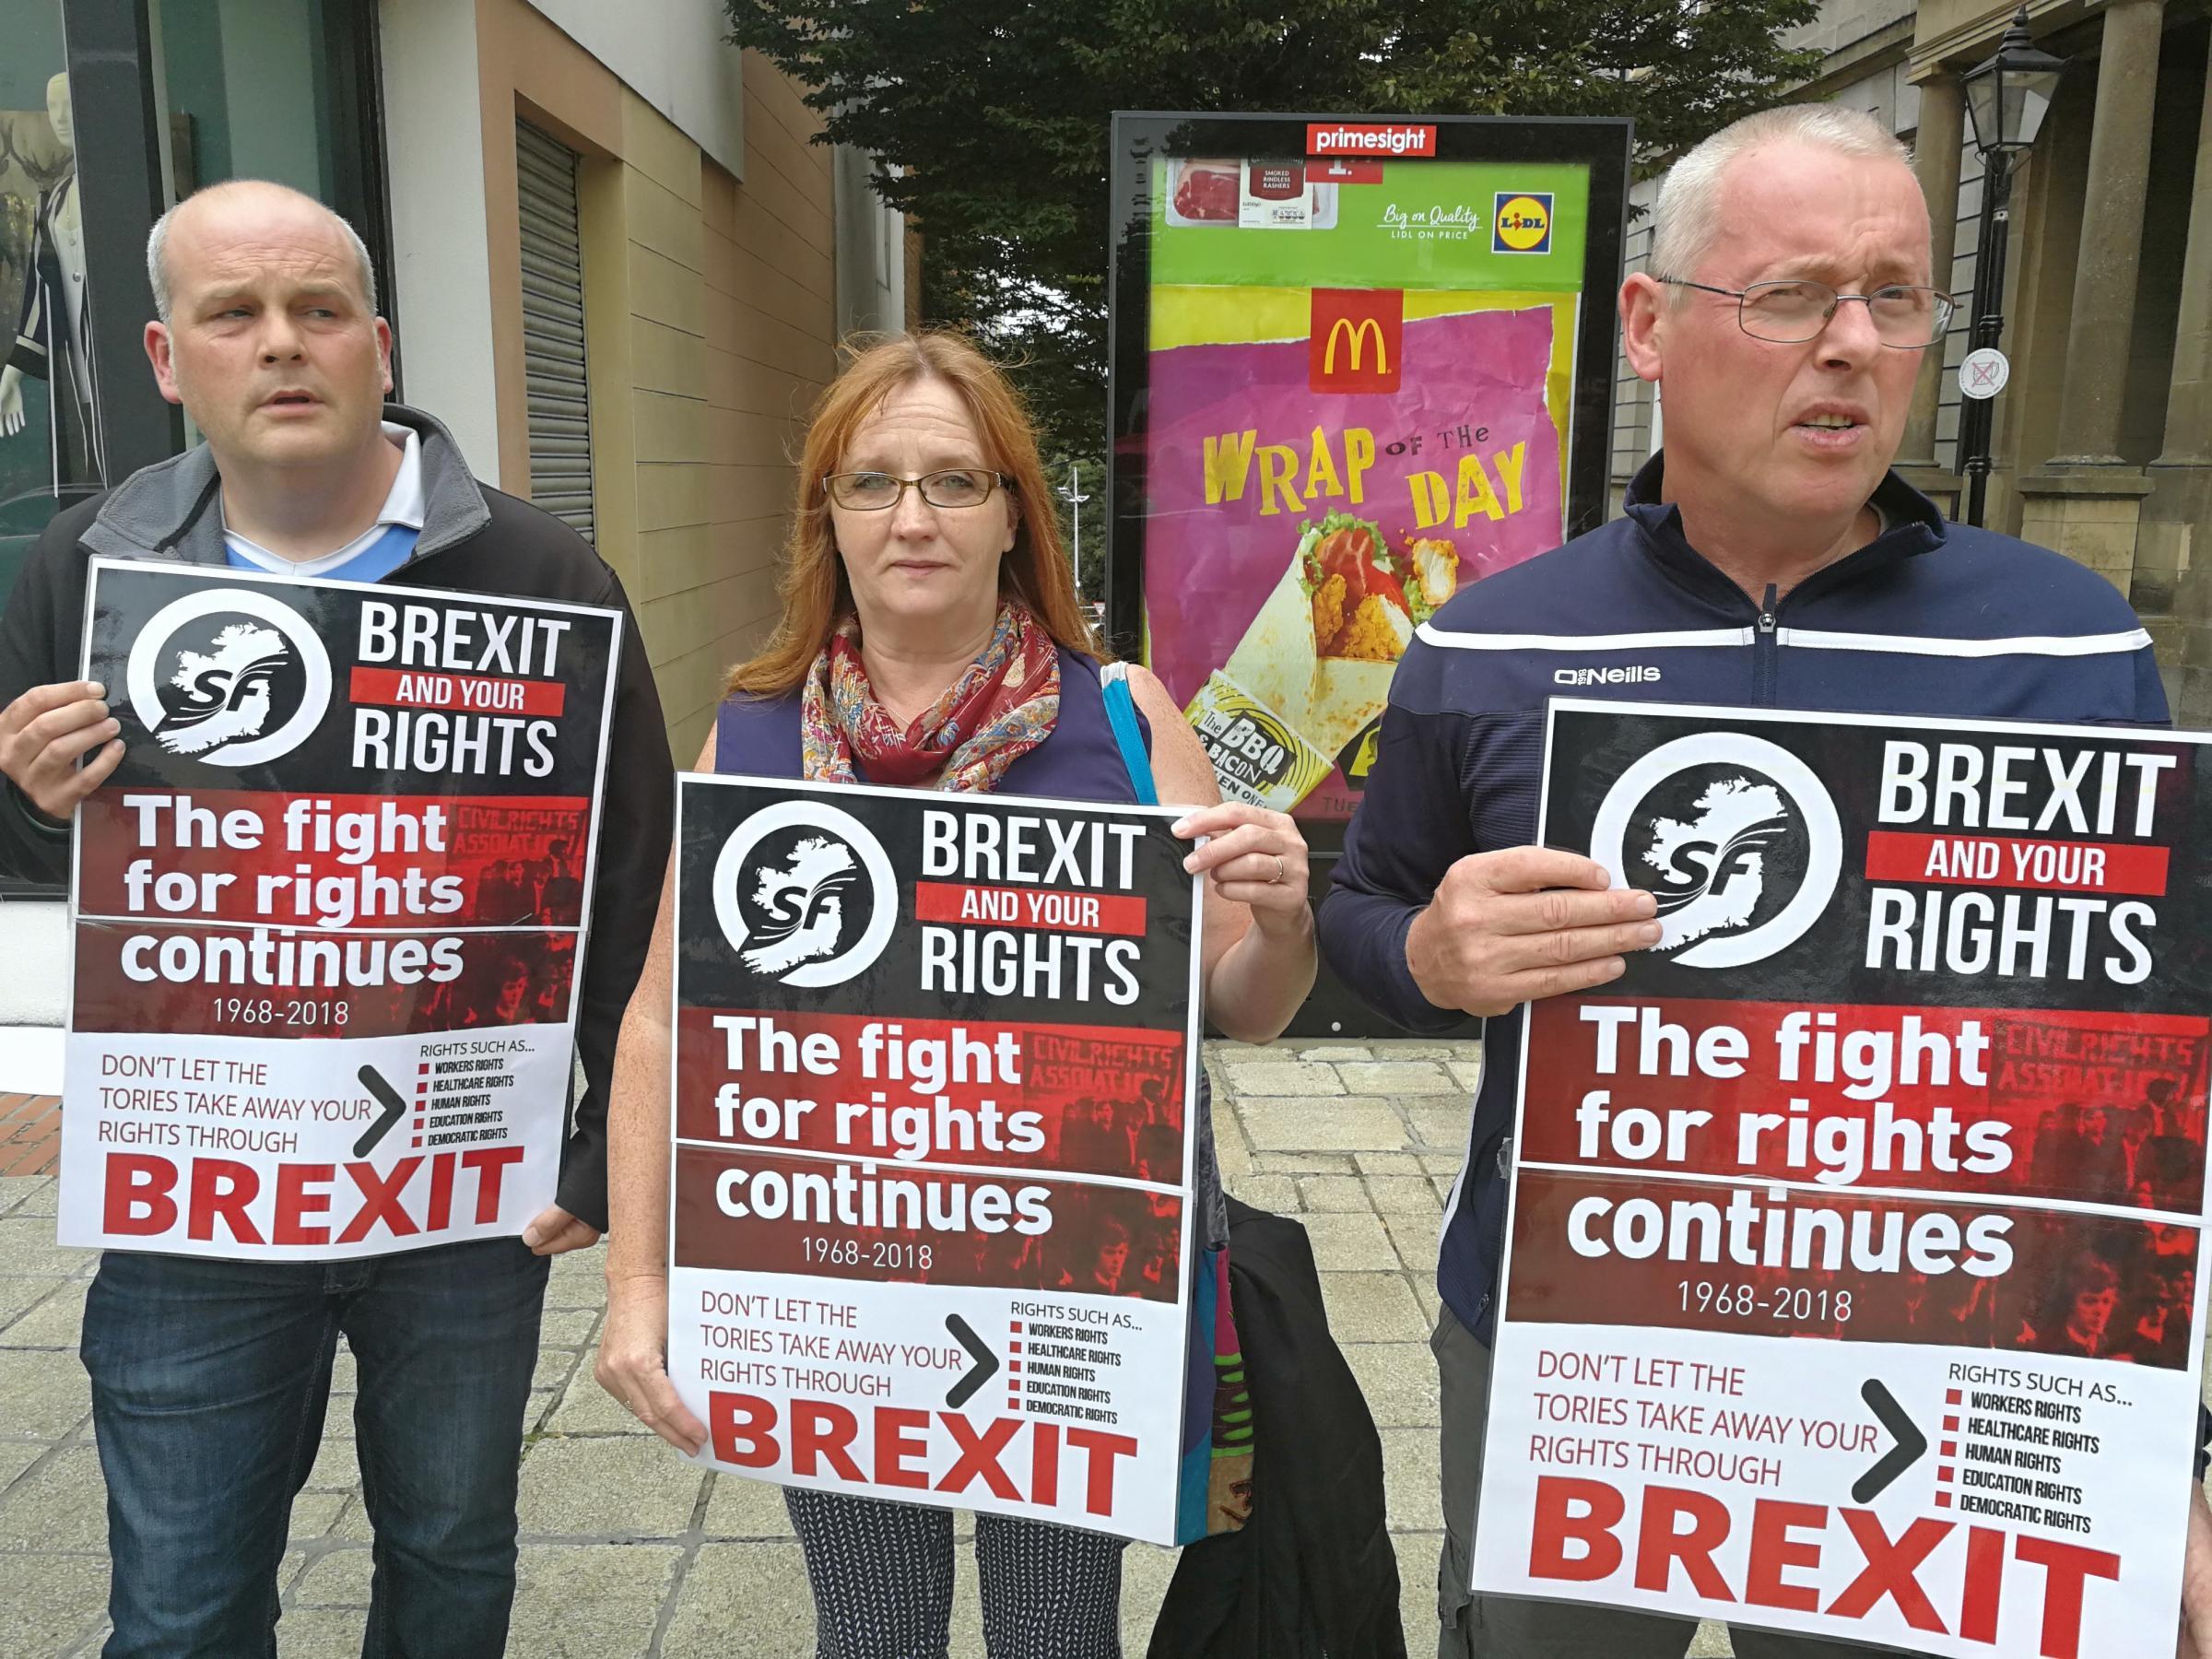 Seán Lynch MLA(right) with local councillors Barry Doherty and Debbie Coyle, calls on EU and Irish Governments to allocate new seats to North in order to protect rights